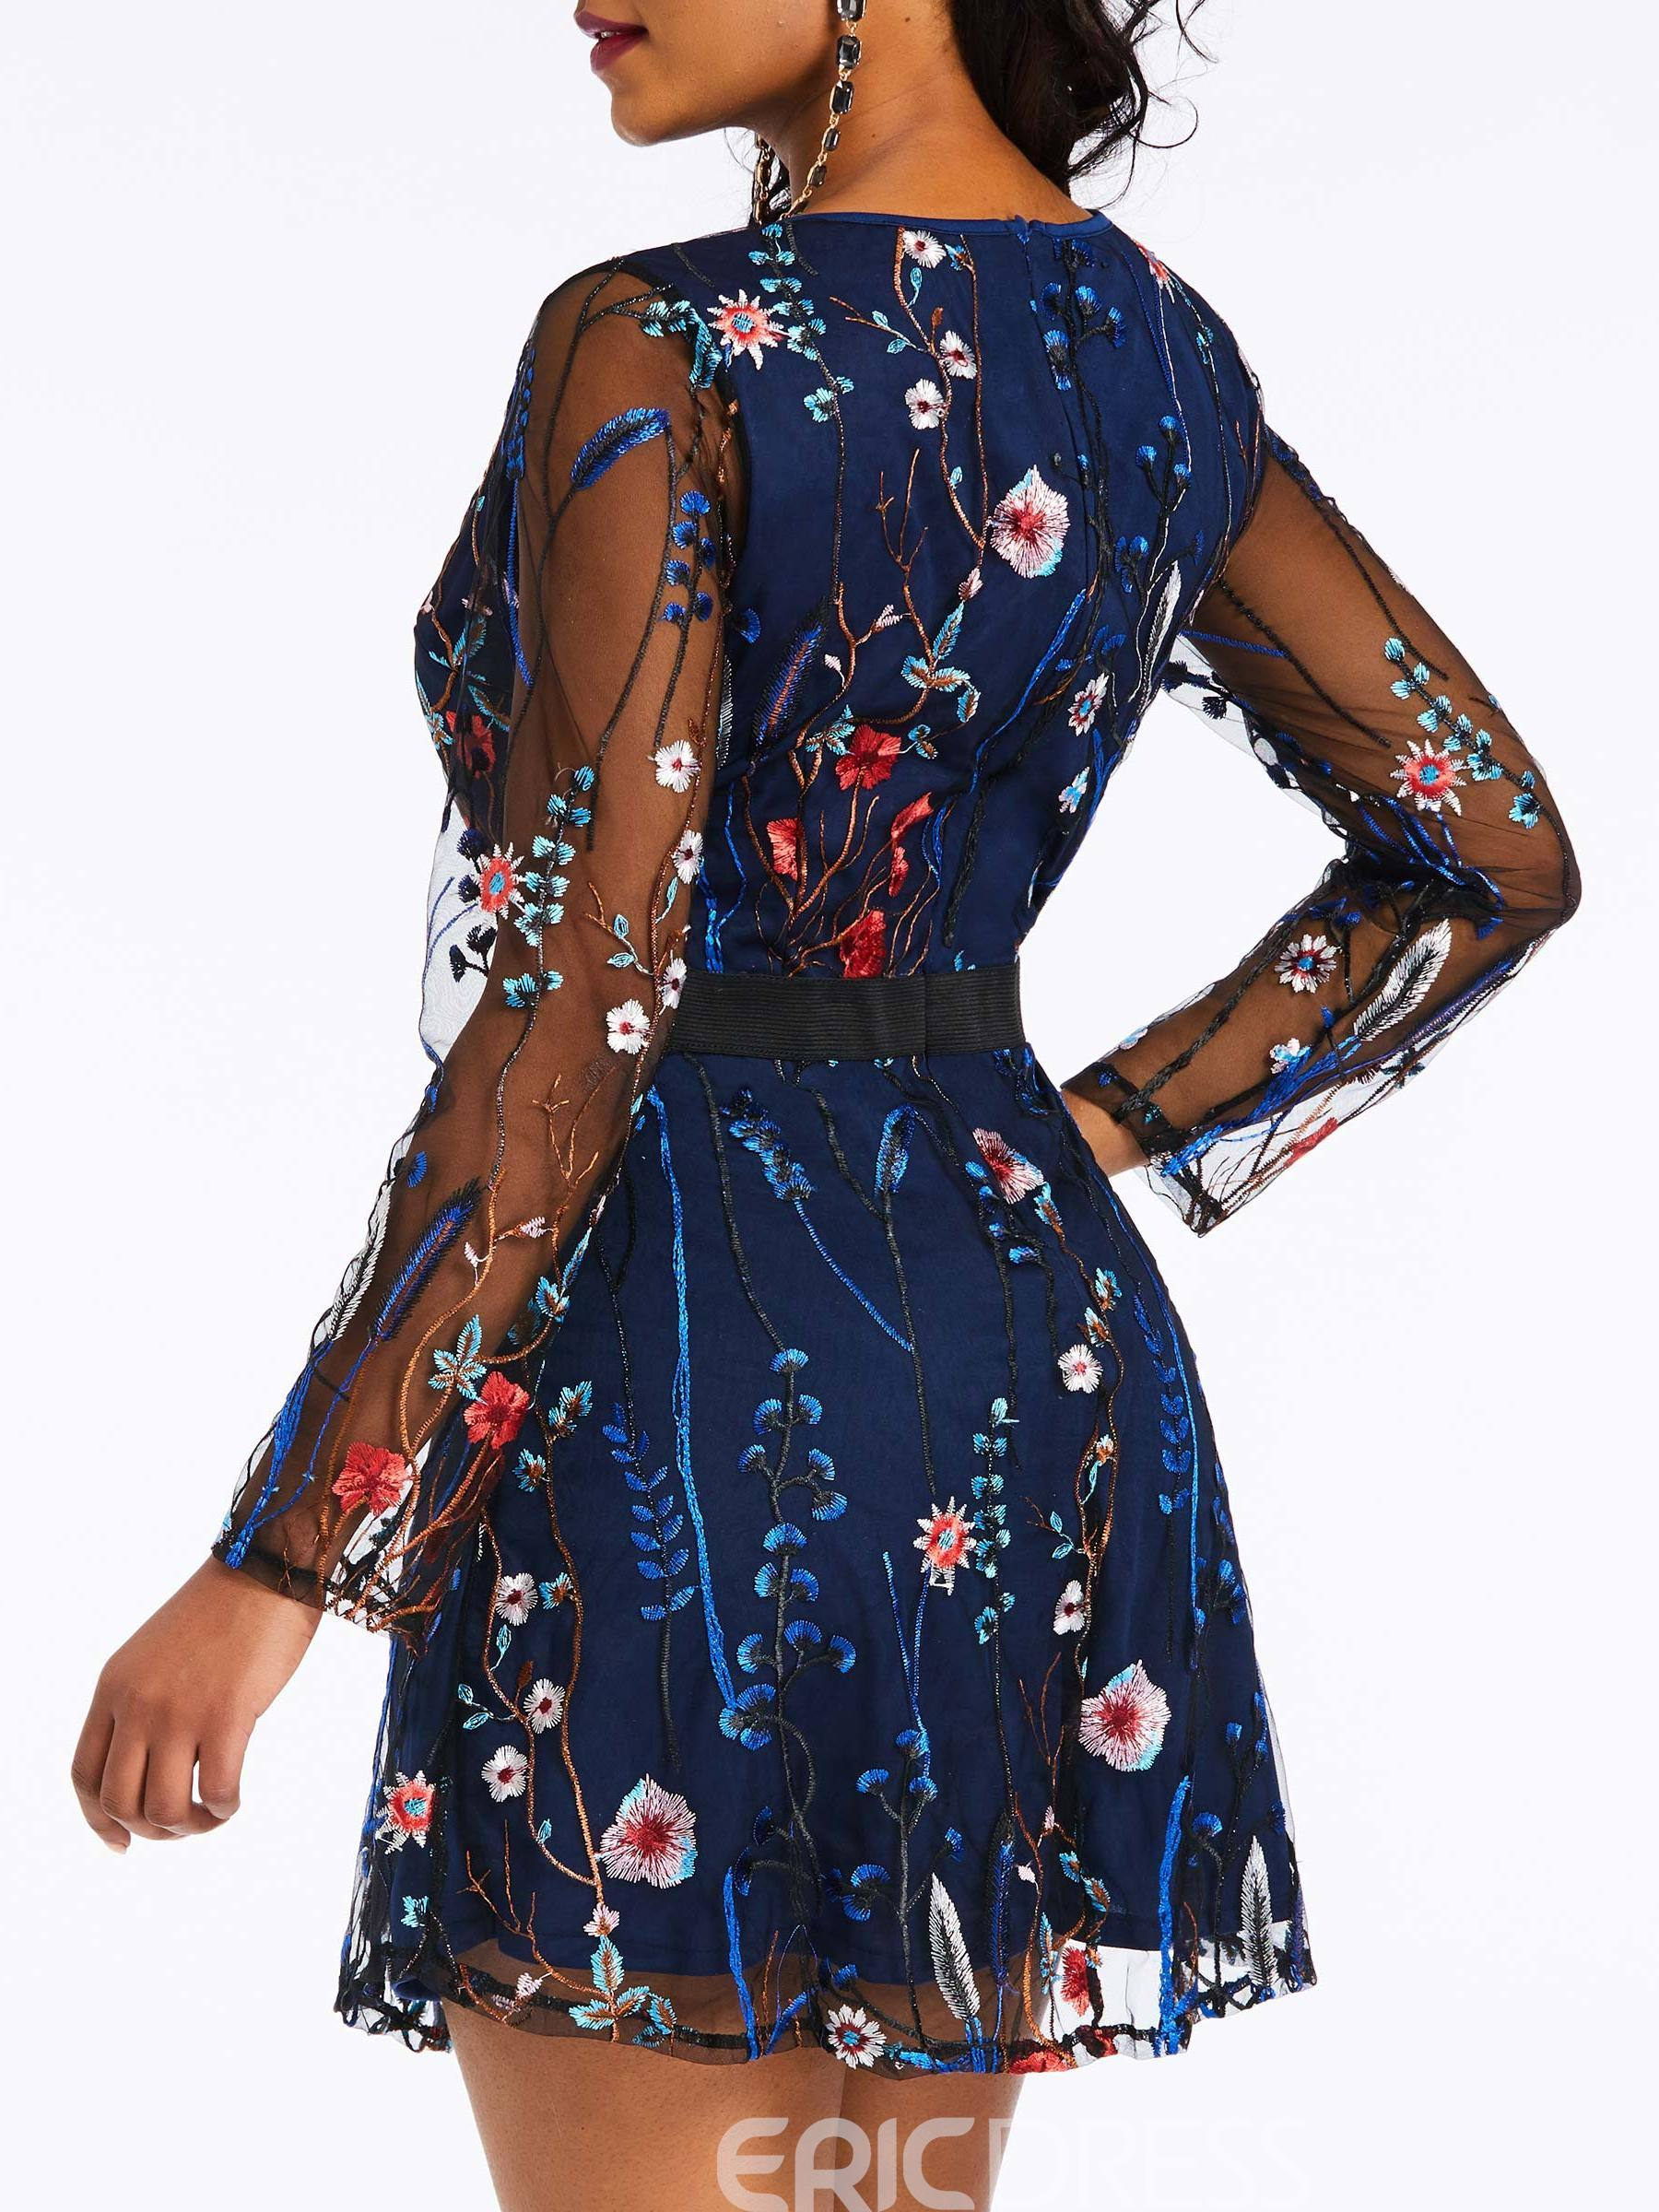 Ericdress Embroidery Above Knee Floral Date Night Dress